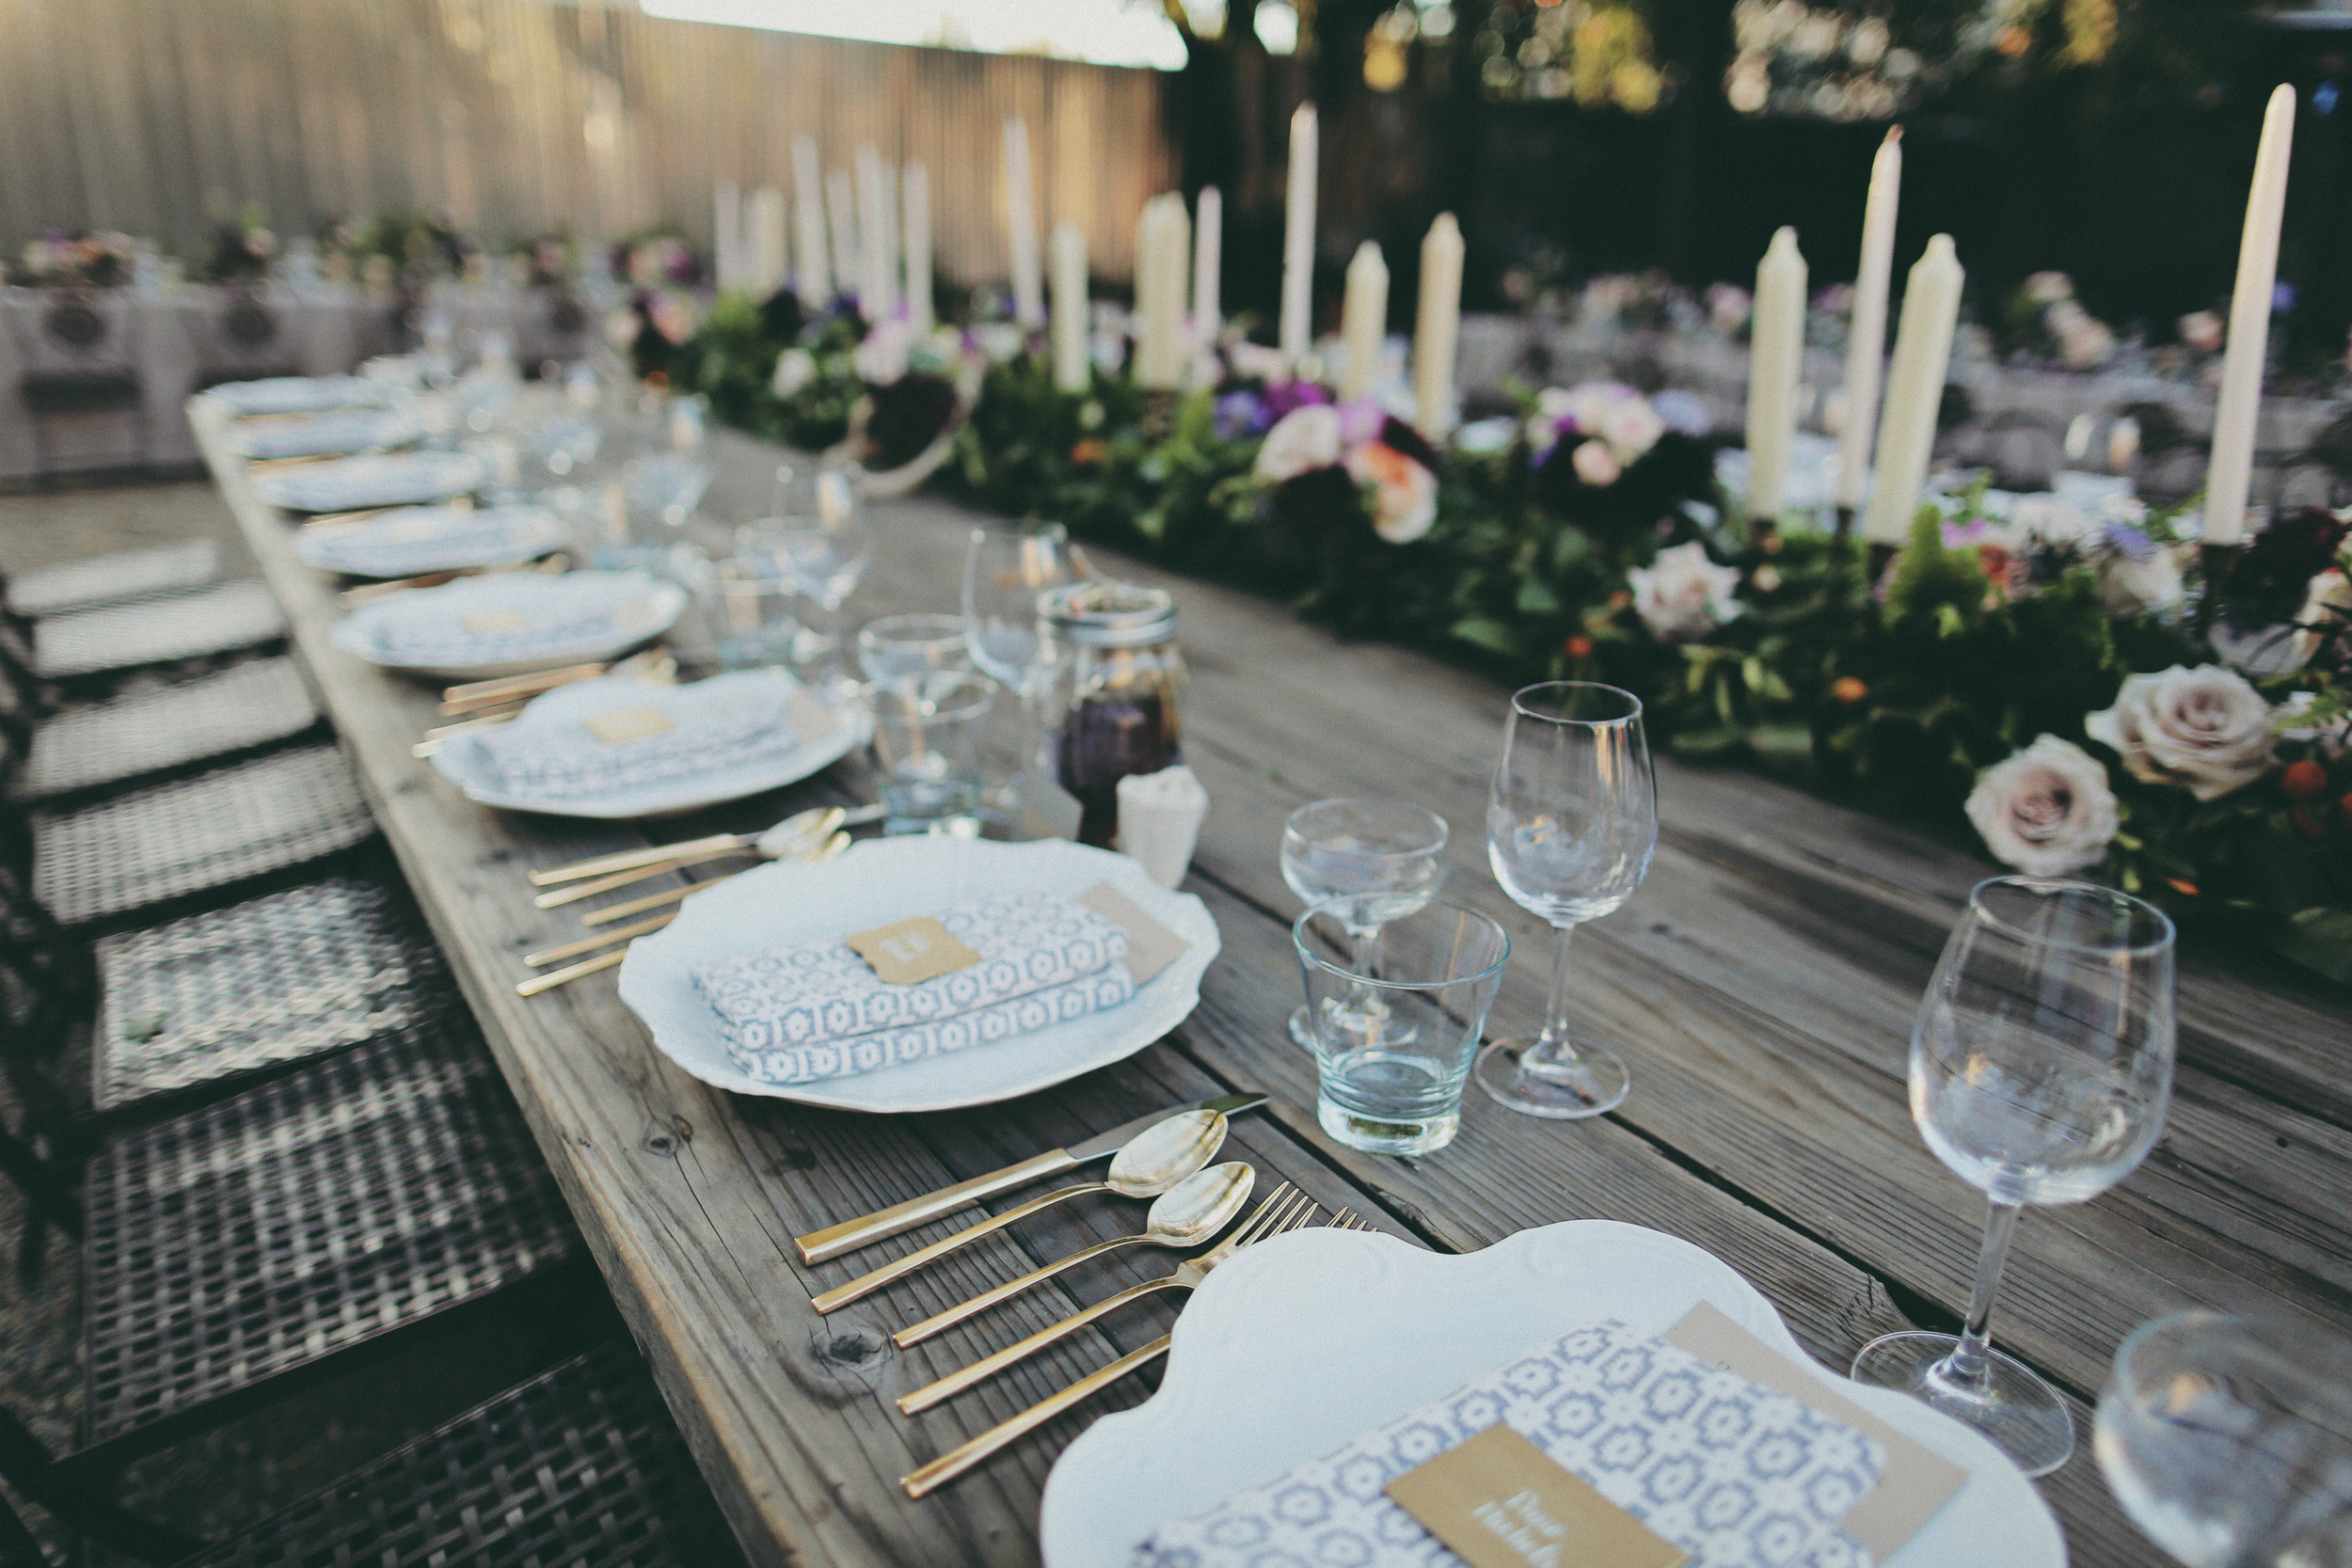 Healdsburg-Sonoma-California-Barndiva-Wedding-Reception-Tablescape.JPG